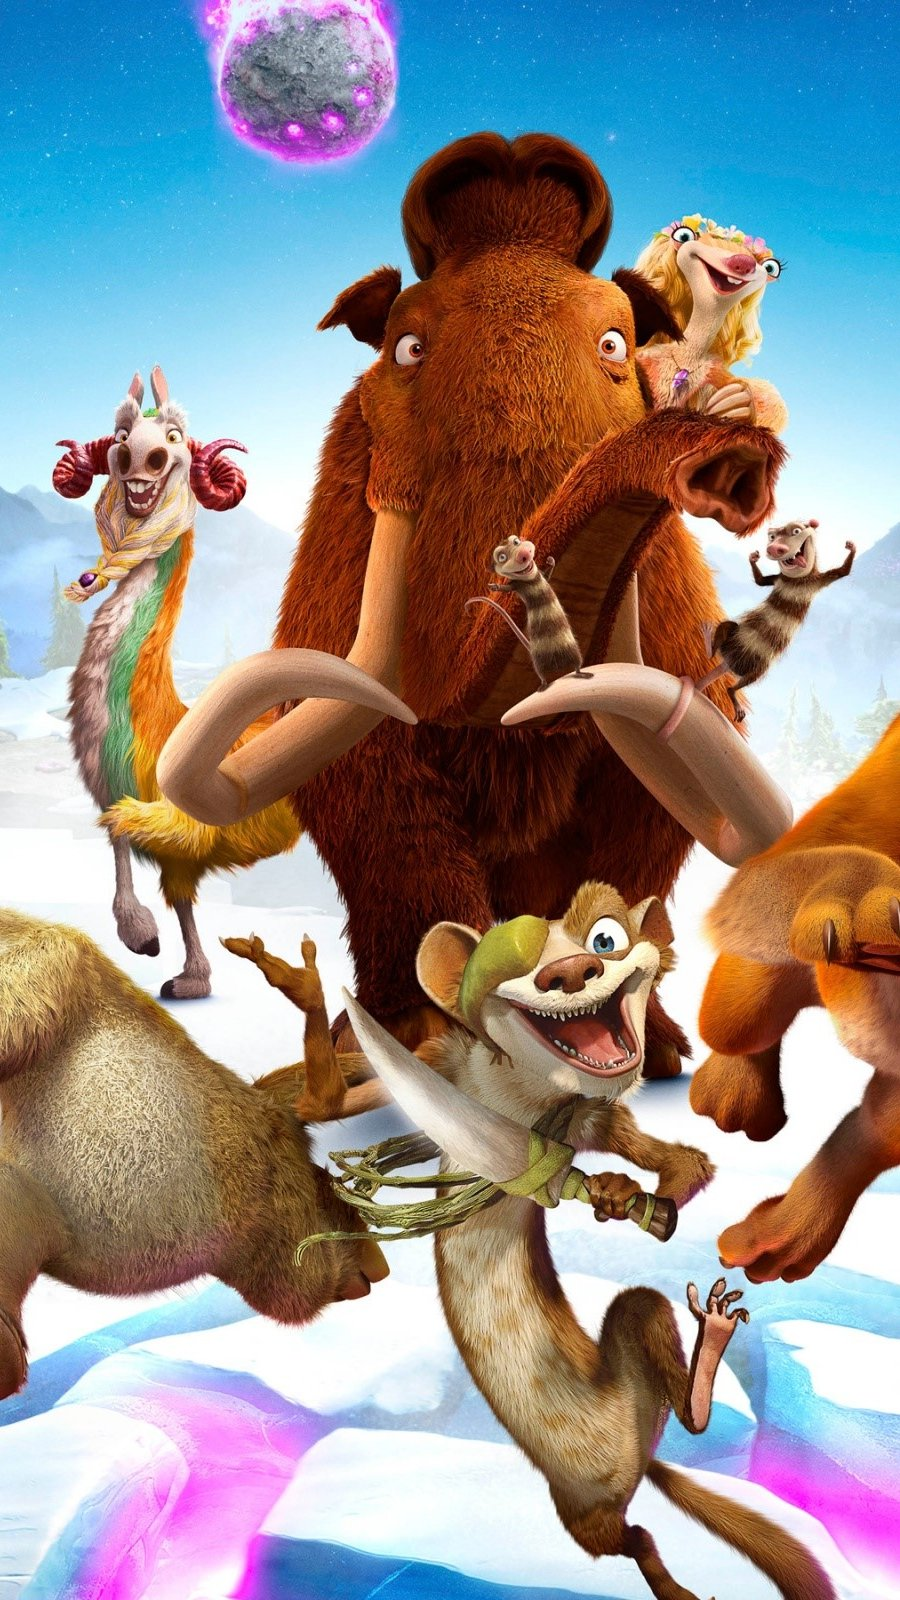 Wallpaper The ice age: clash of worlds Vertical